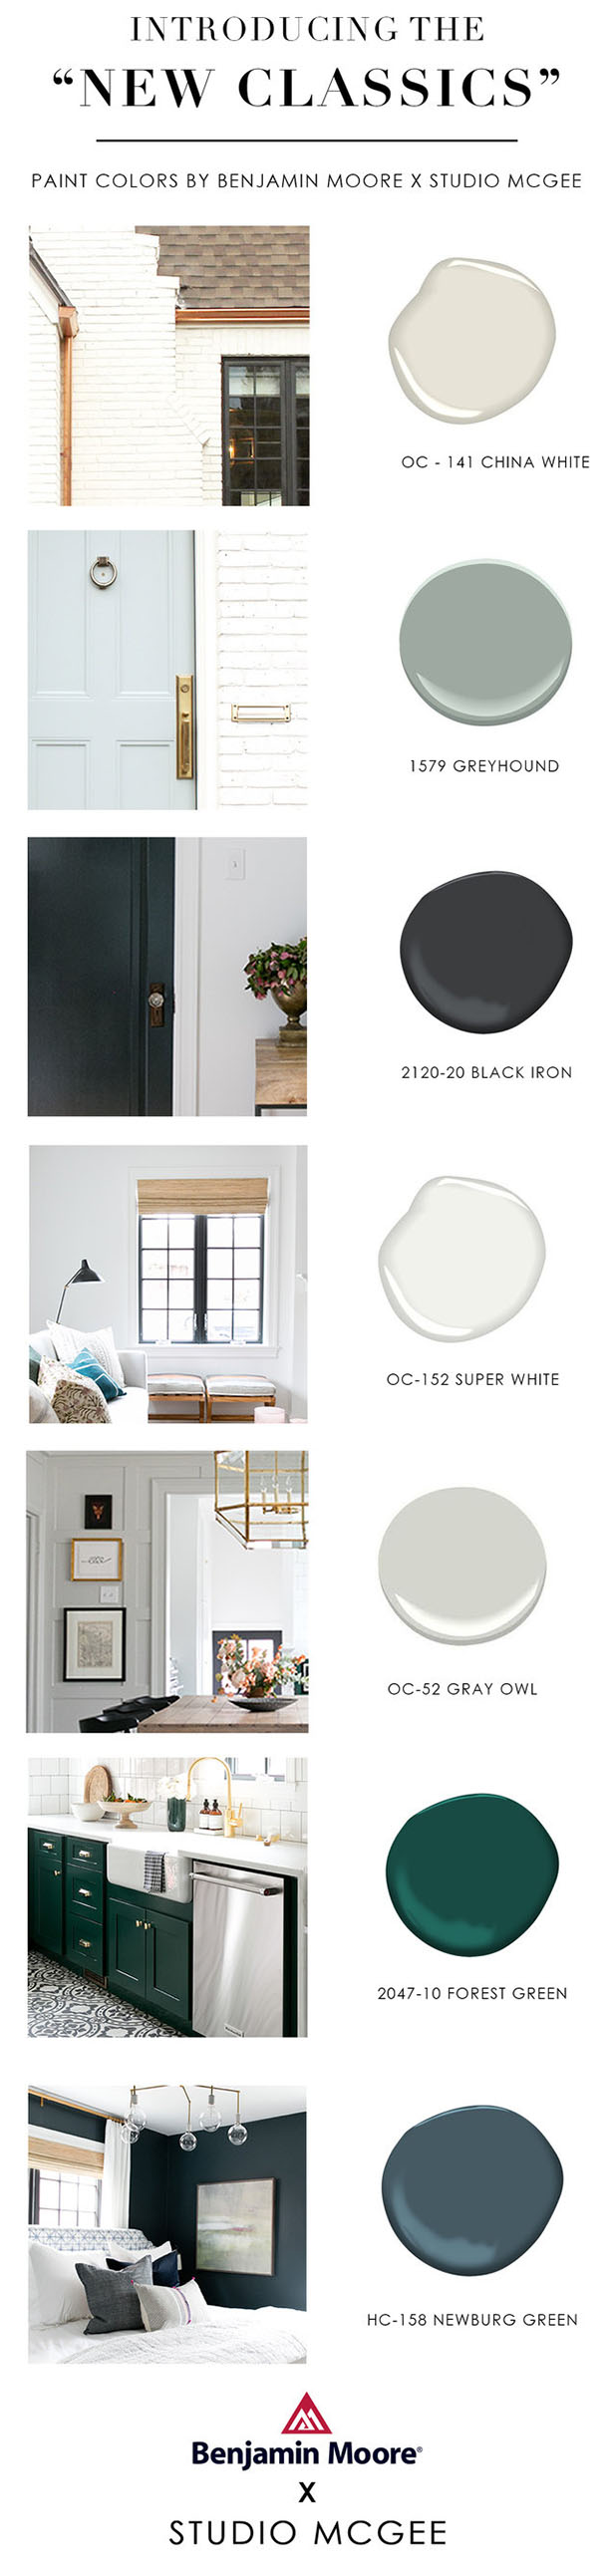 Friday Finds Vol. 28: The New Classics // Paint colours by Studio McGee and Benjamin Moore #homedecor #interiordesign #paintcolor #sofreshandsochic